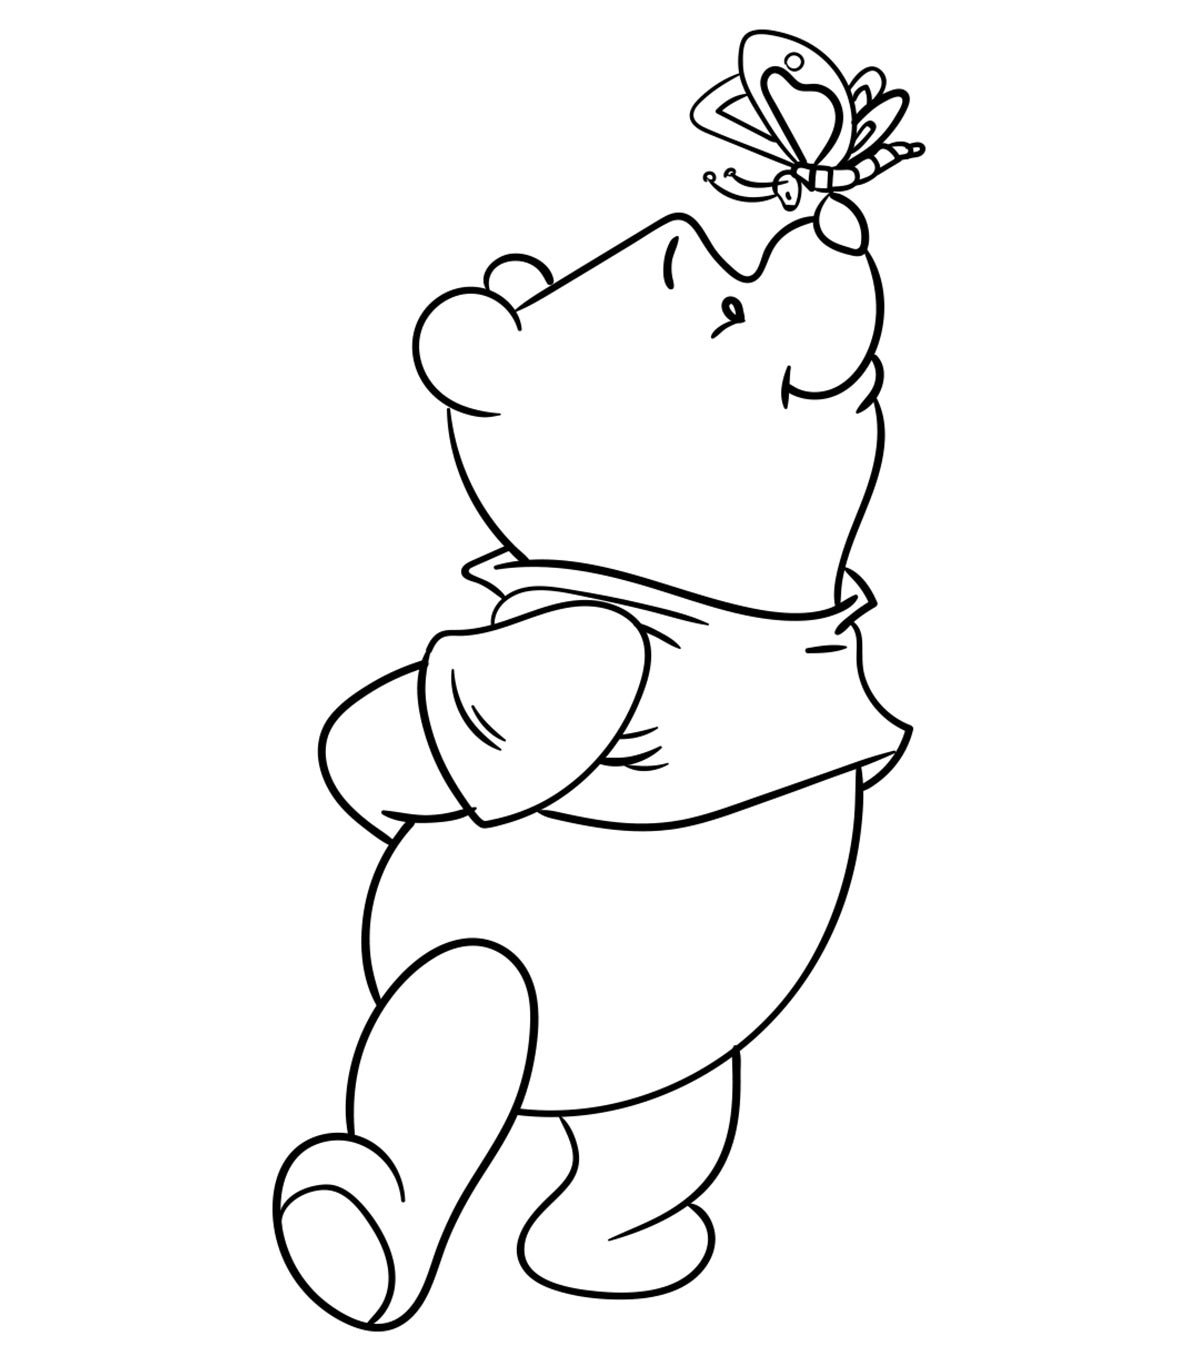 Winnie The Pooh Book Pdf Free Download